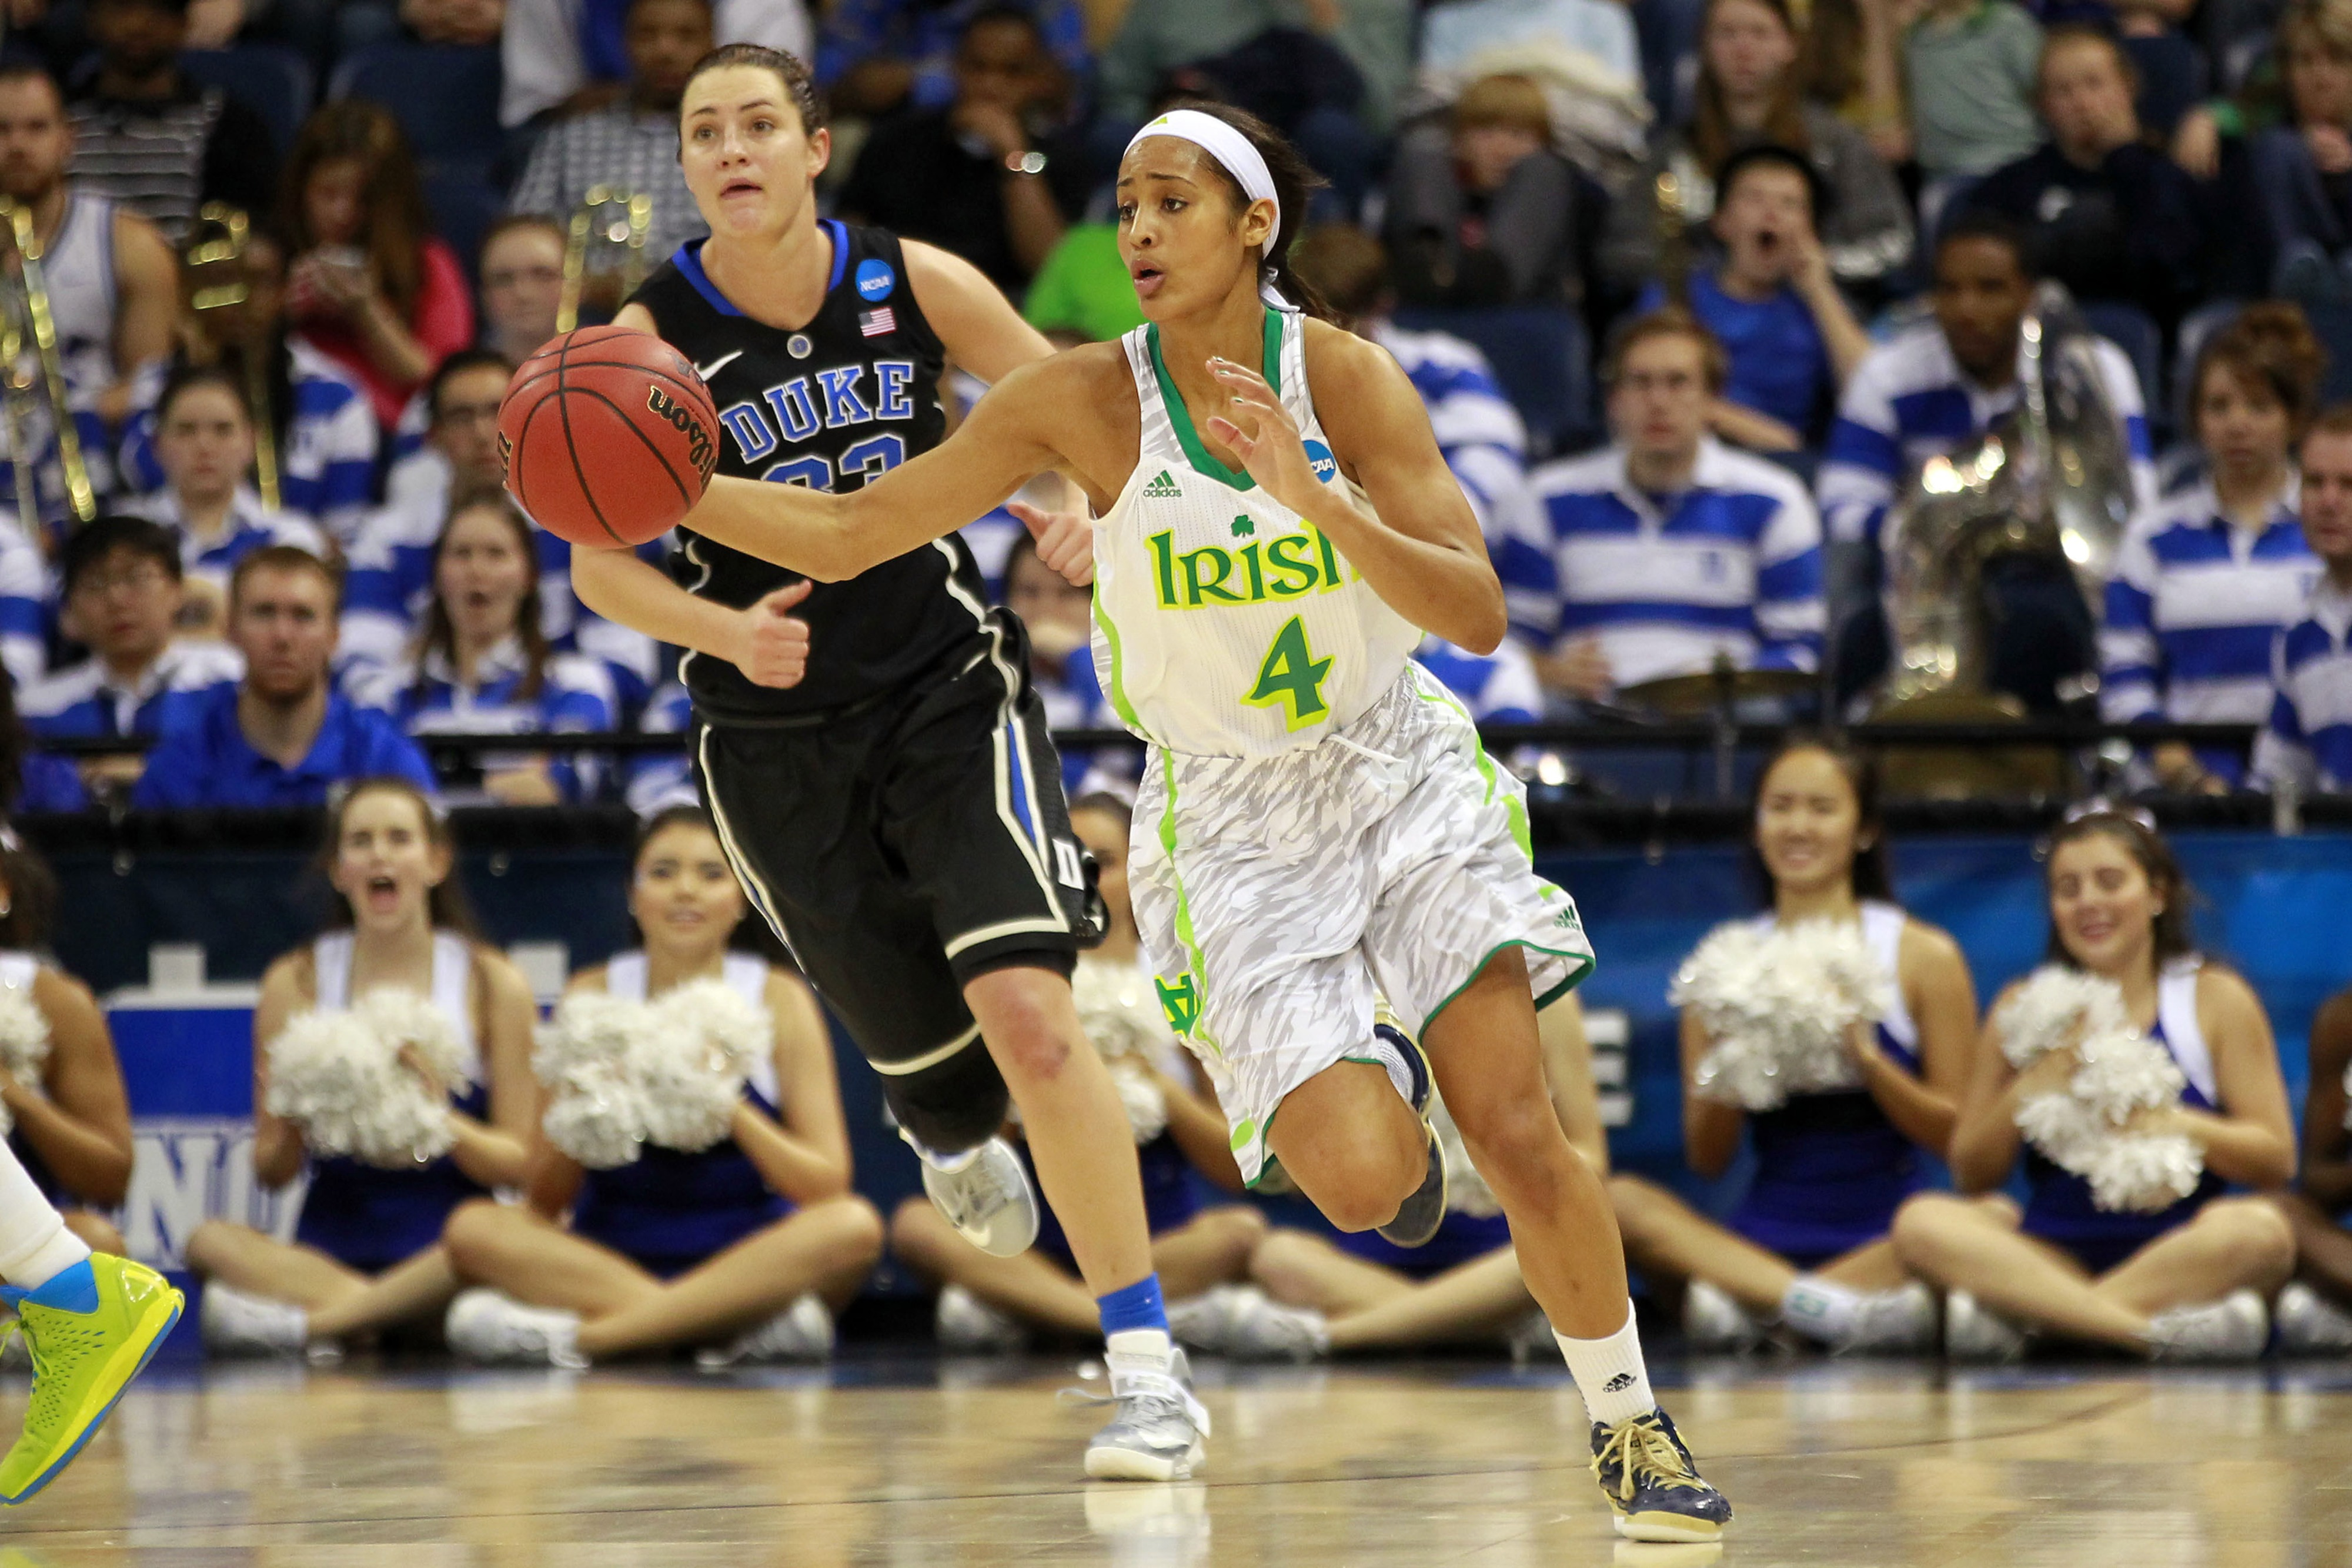 Skylar Diggins and her college team has the upper hand to win it all in the NCAA Tournament.  And though some folks may disagree, I think she will be someone who will make an impact as a pro regardless of what team she's on.